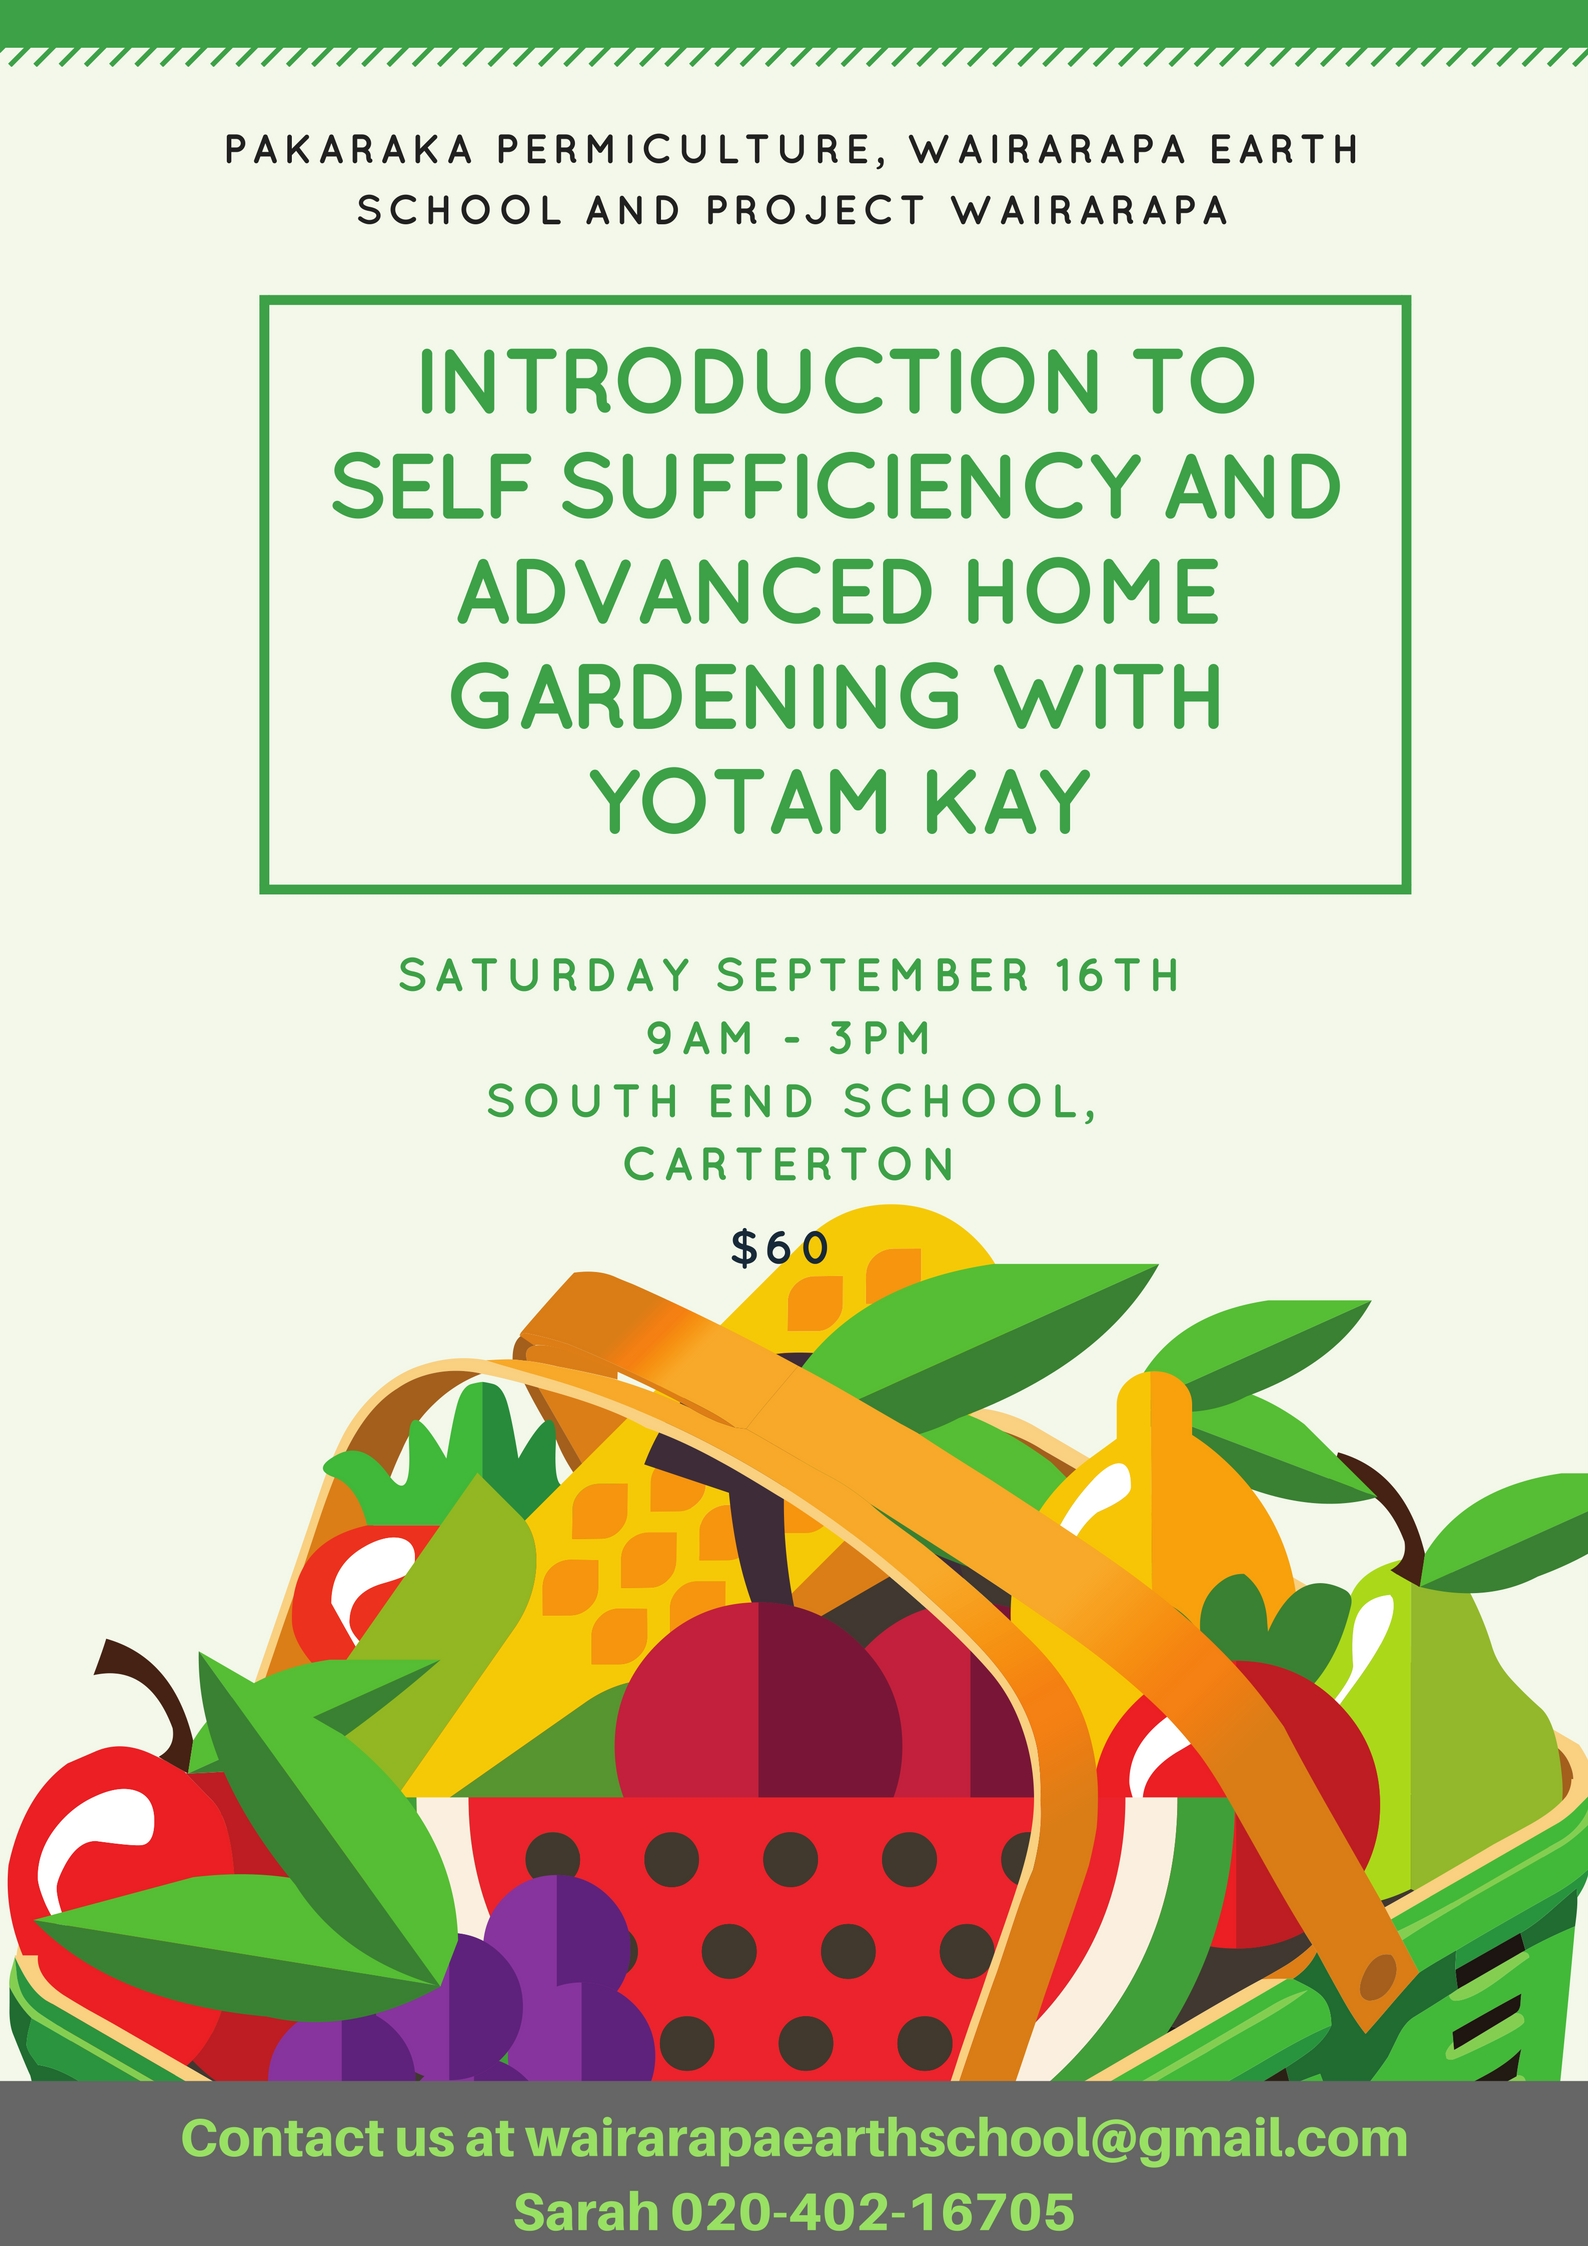 Introduction to Self Sufficency and Adcanced Home Gardening (4)